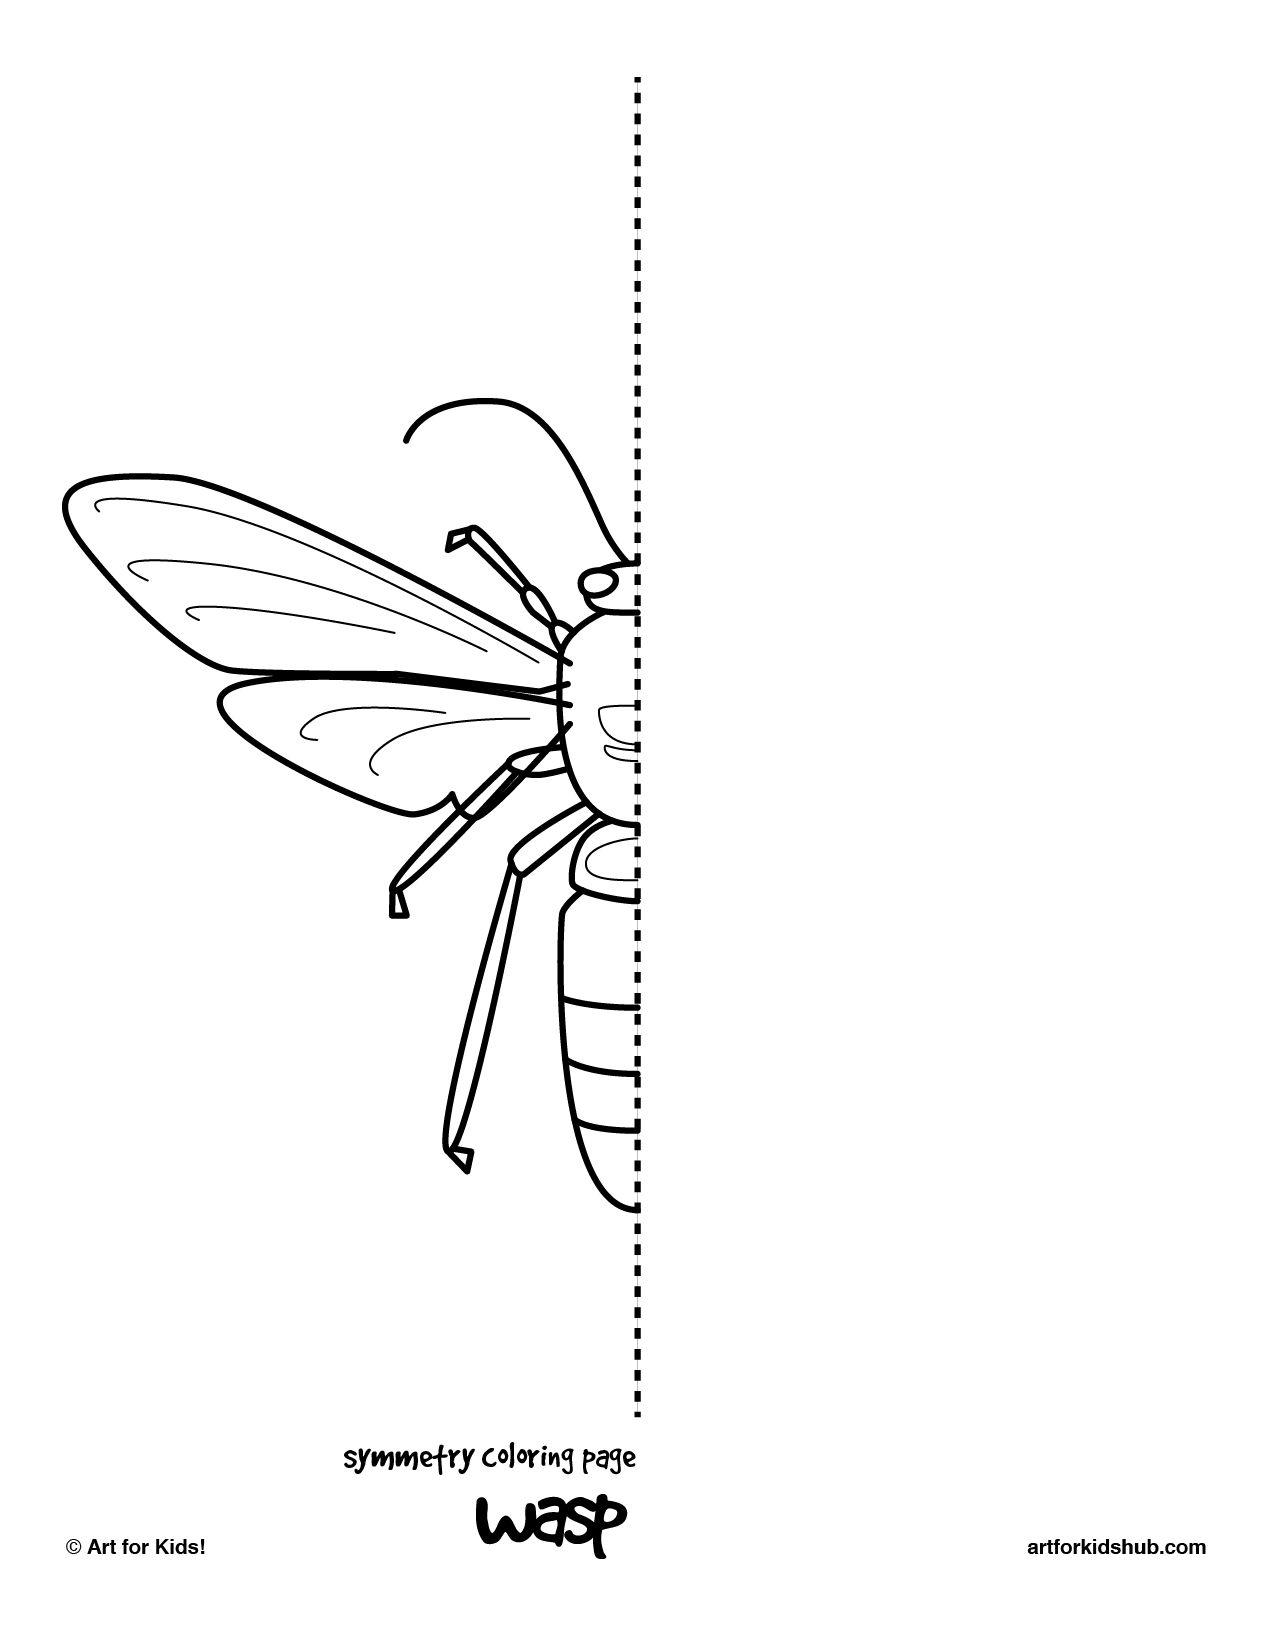 s line of symmetry coloring pages - photo #46